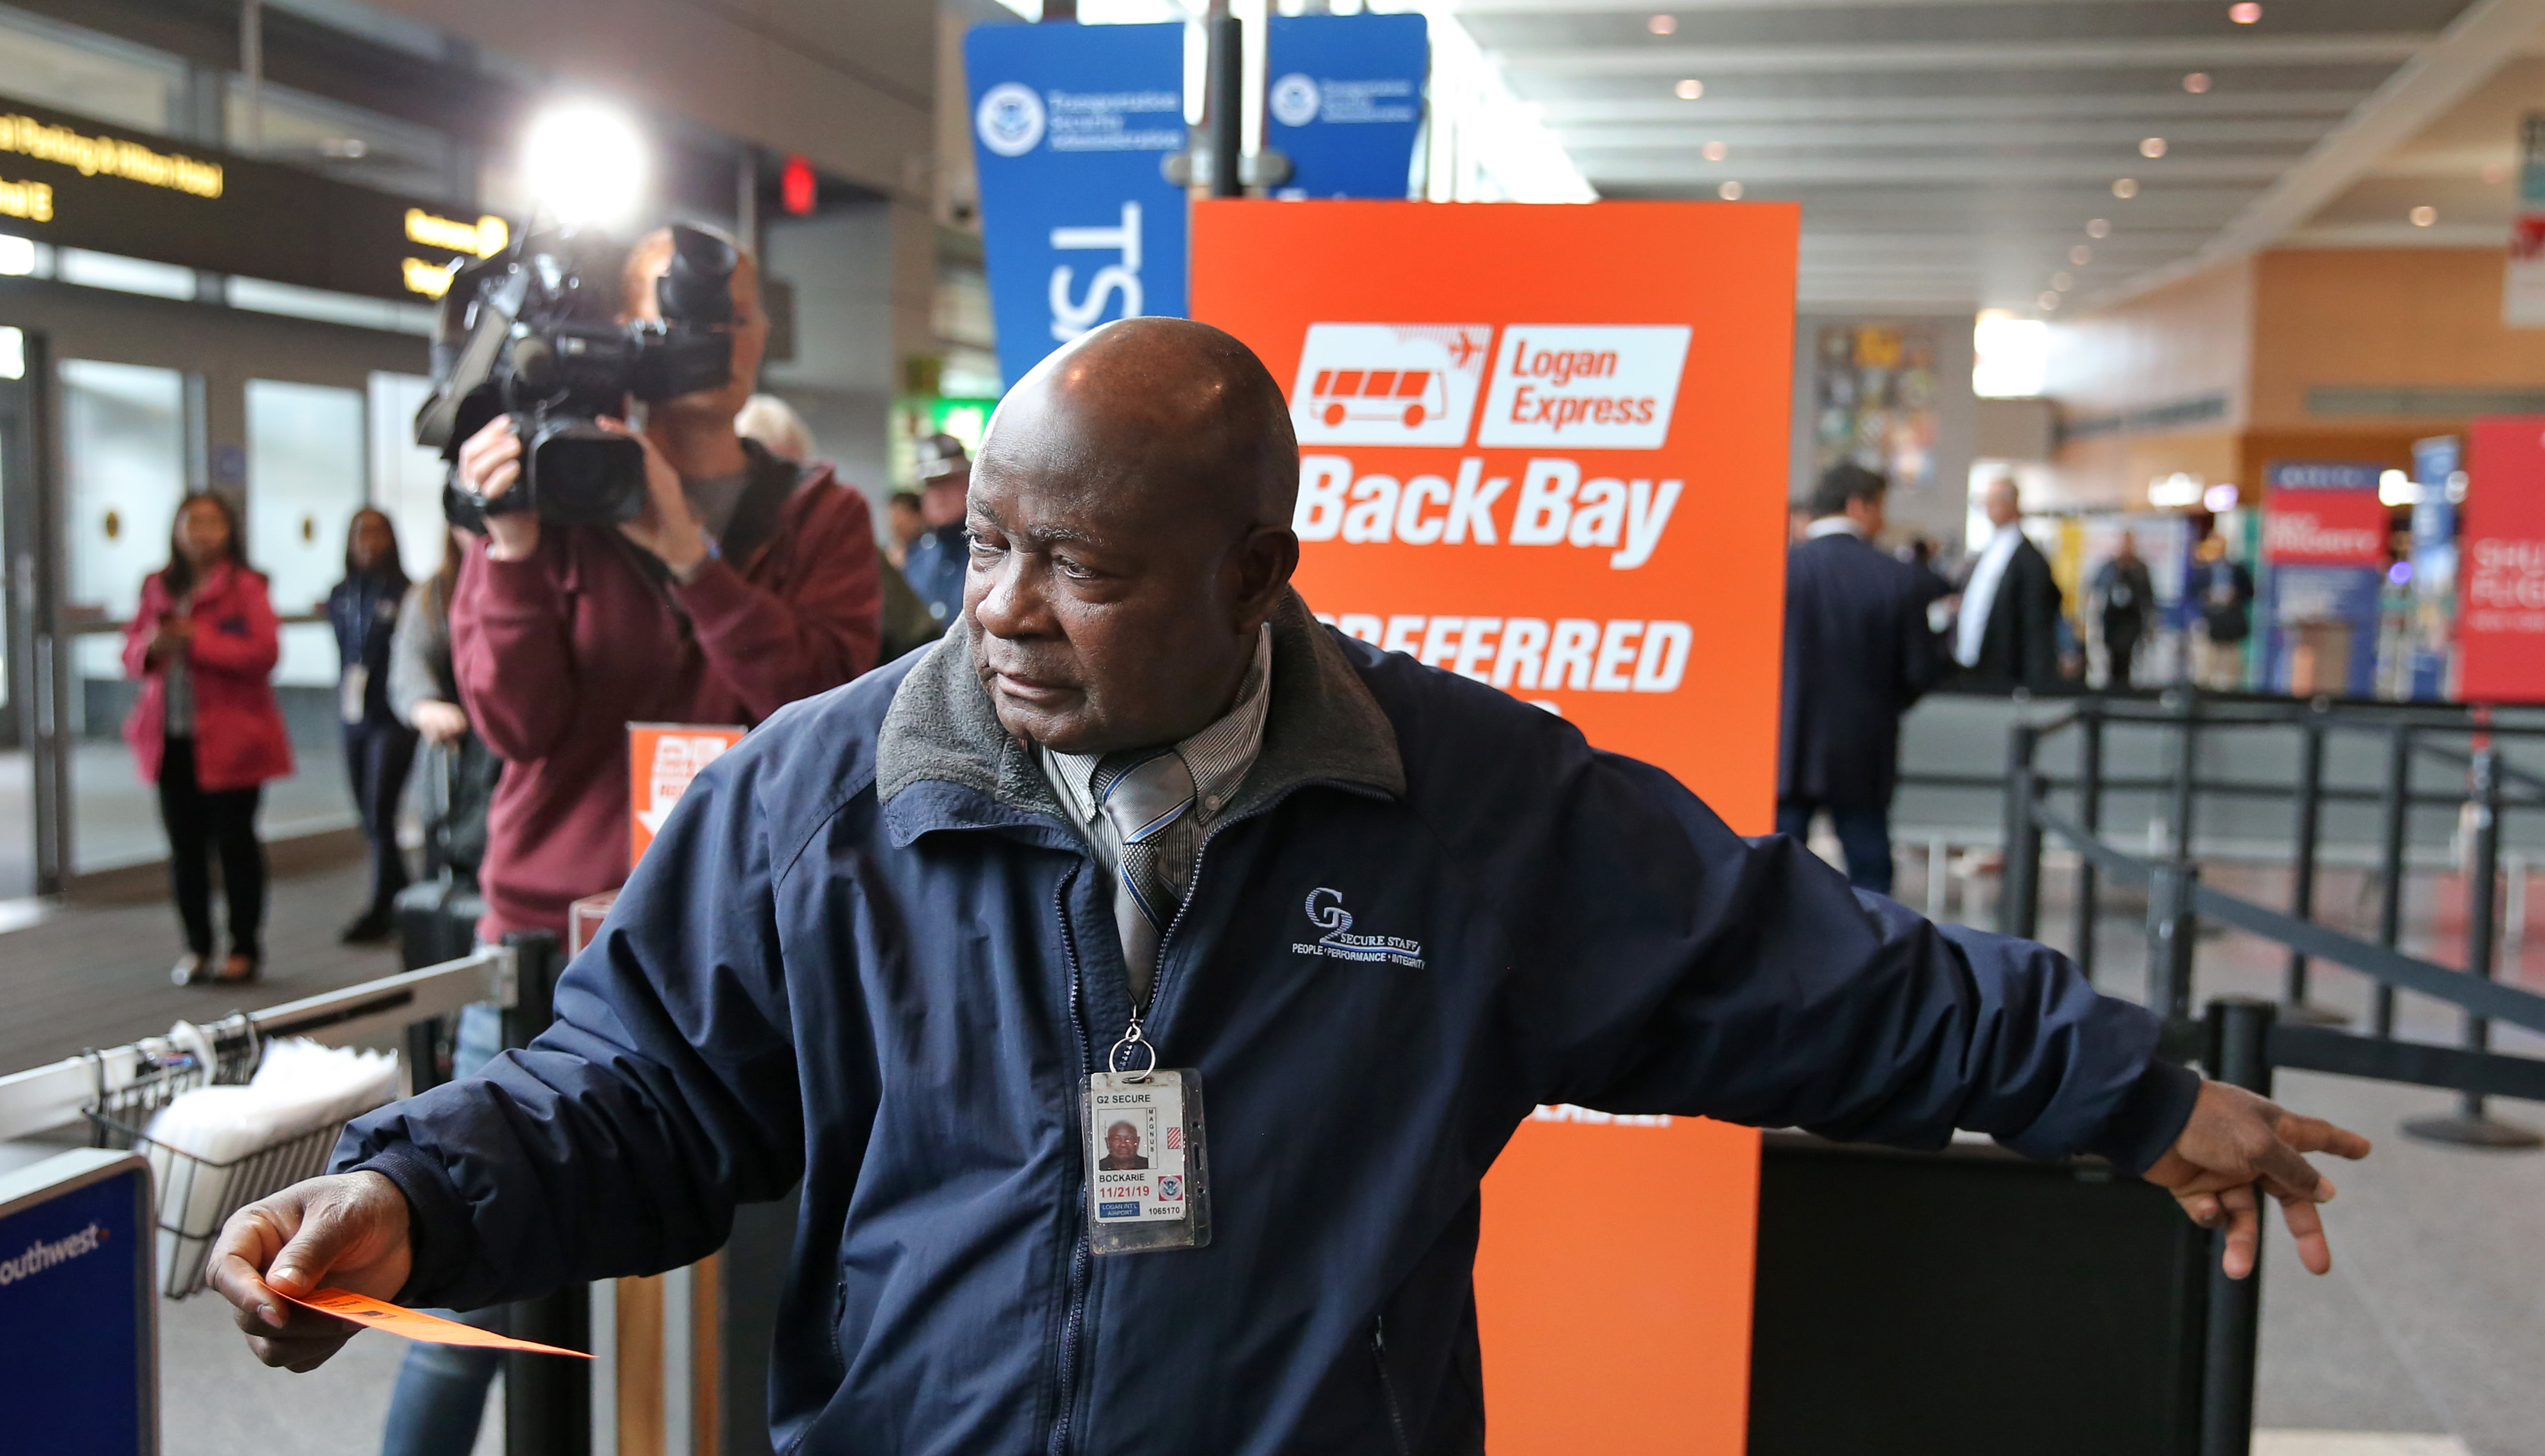 If you take this bus to Logan Airport, Massport will let you cut the